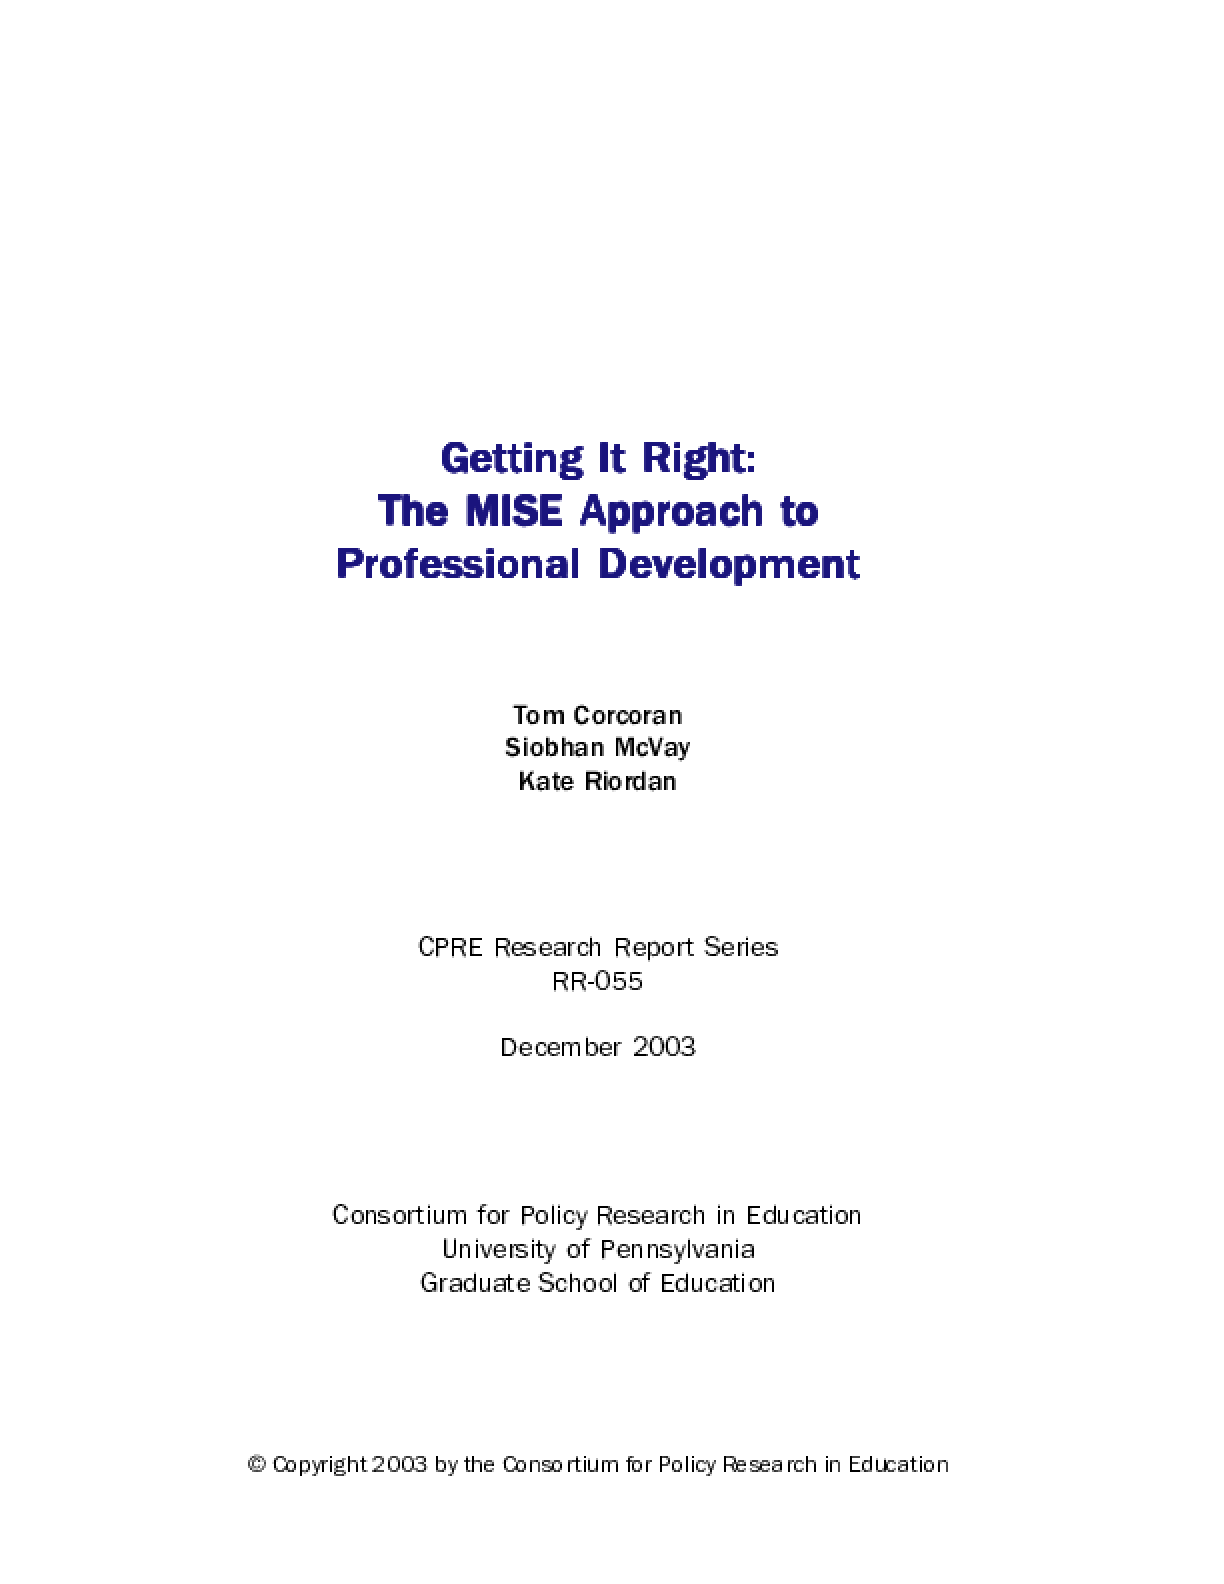 Getting It Right: The MISE Approach to Professional Development